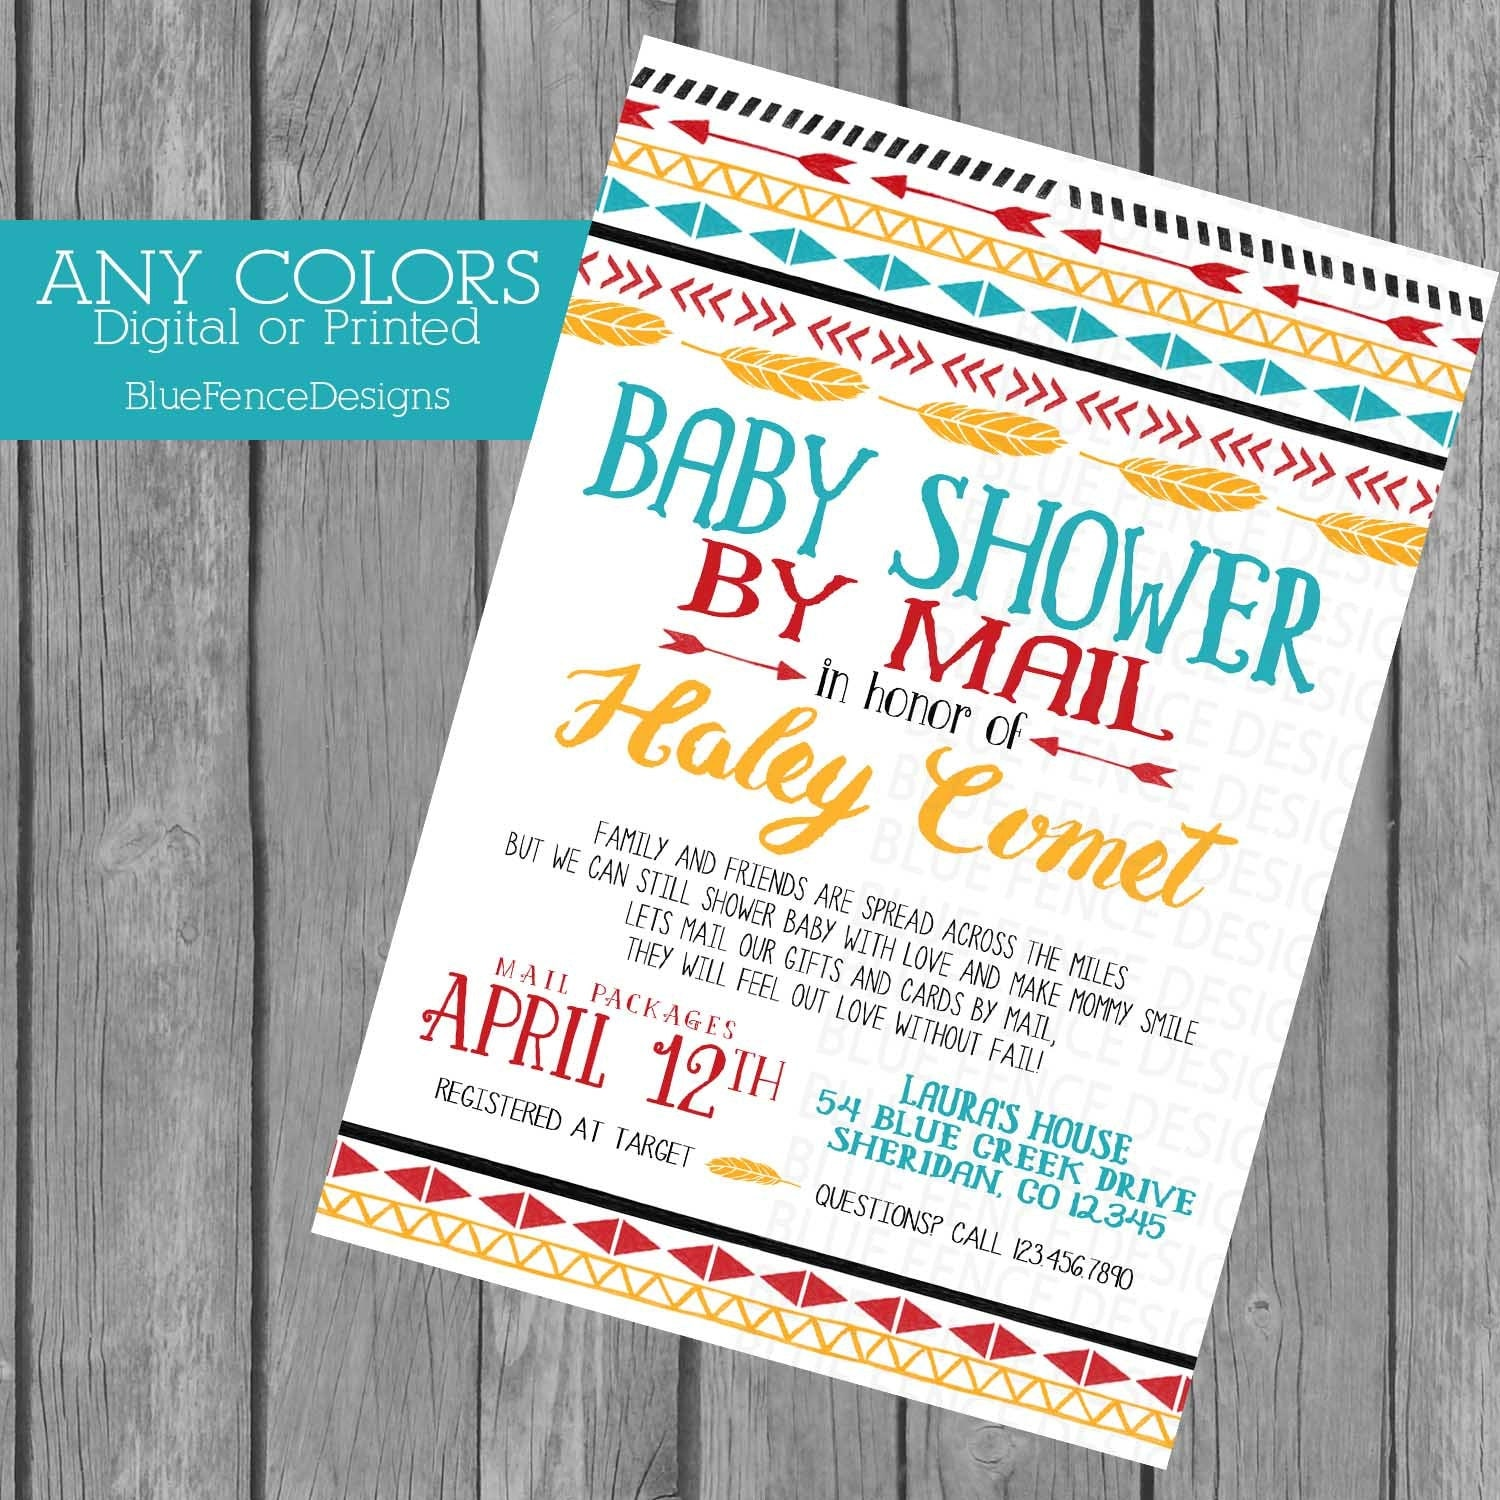 Across the Miles Baby Shower Invitation Baby Shower by Mail